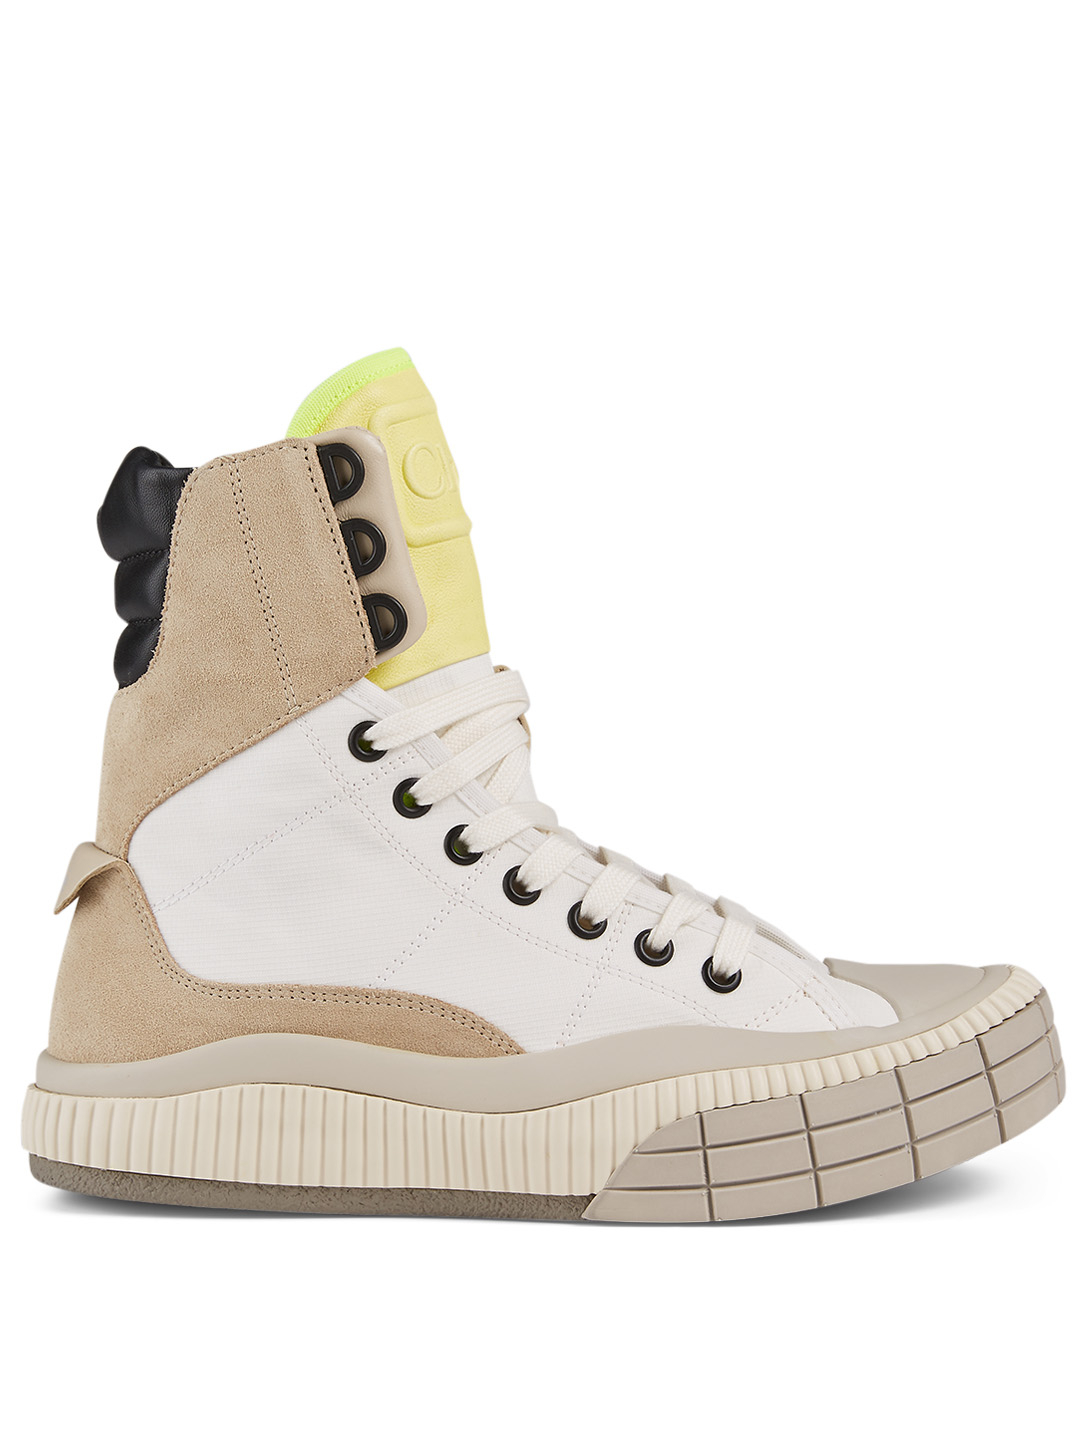 CHLOÉ Clint Canvas And Suede High-Top Sneakers Women's Beige